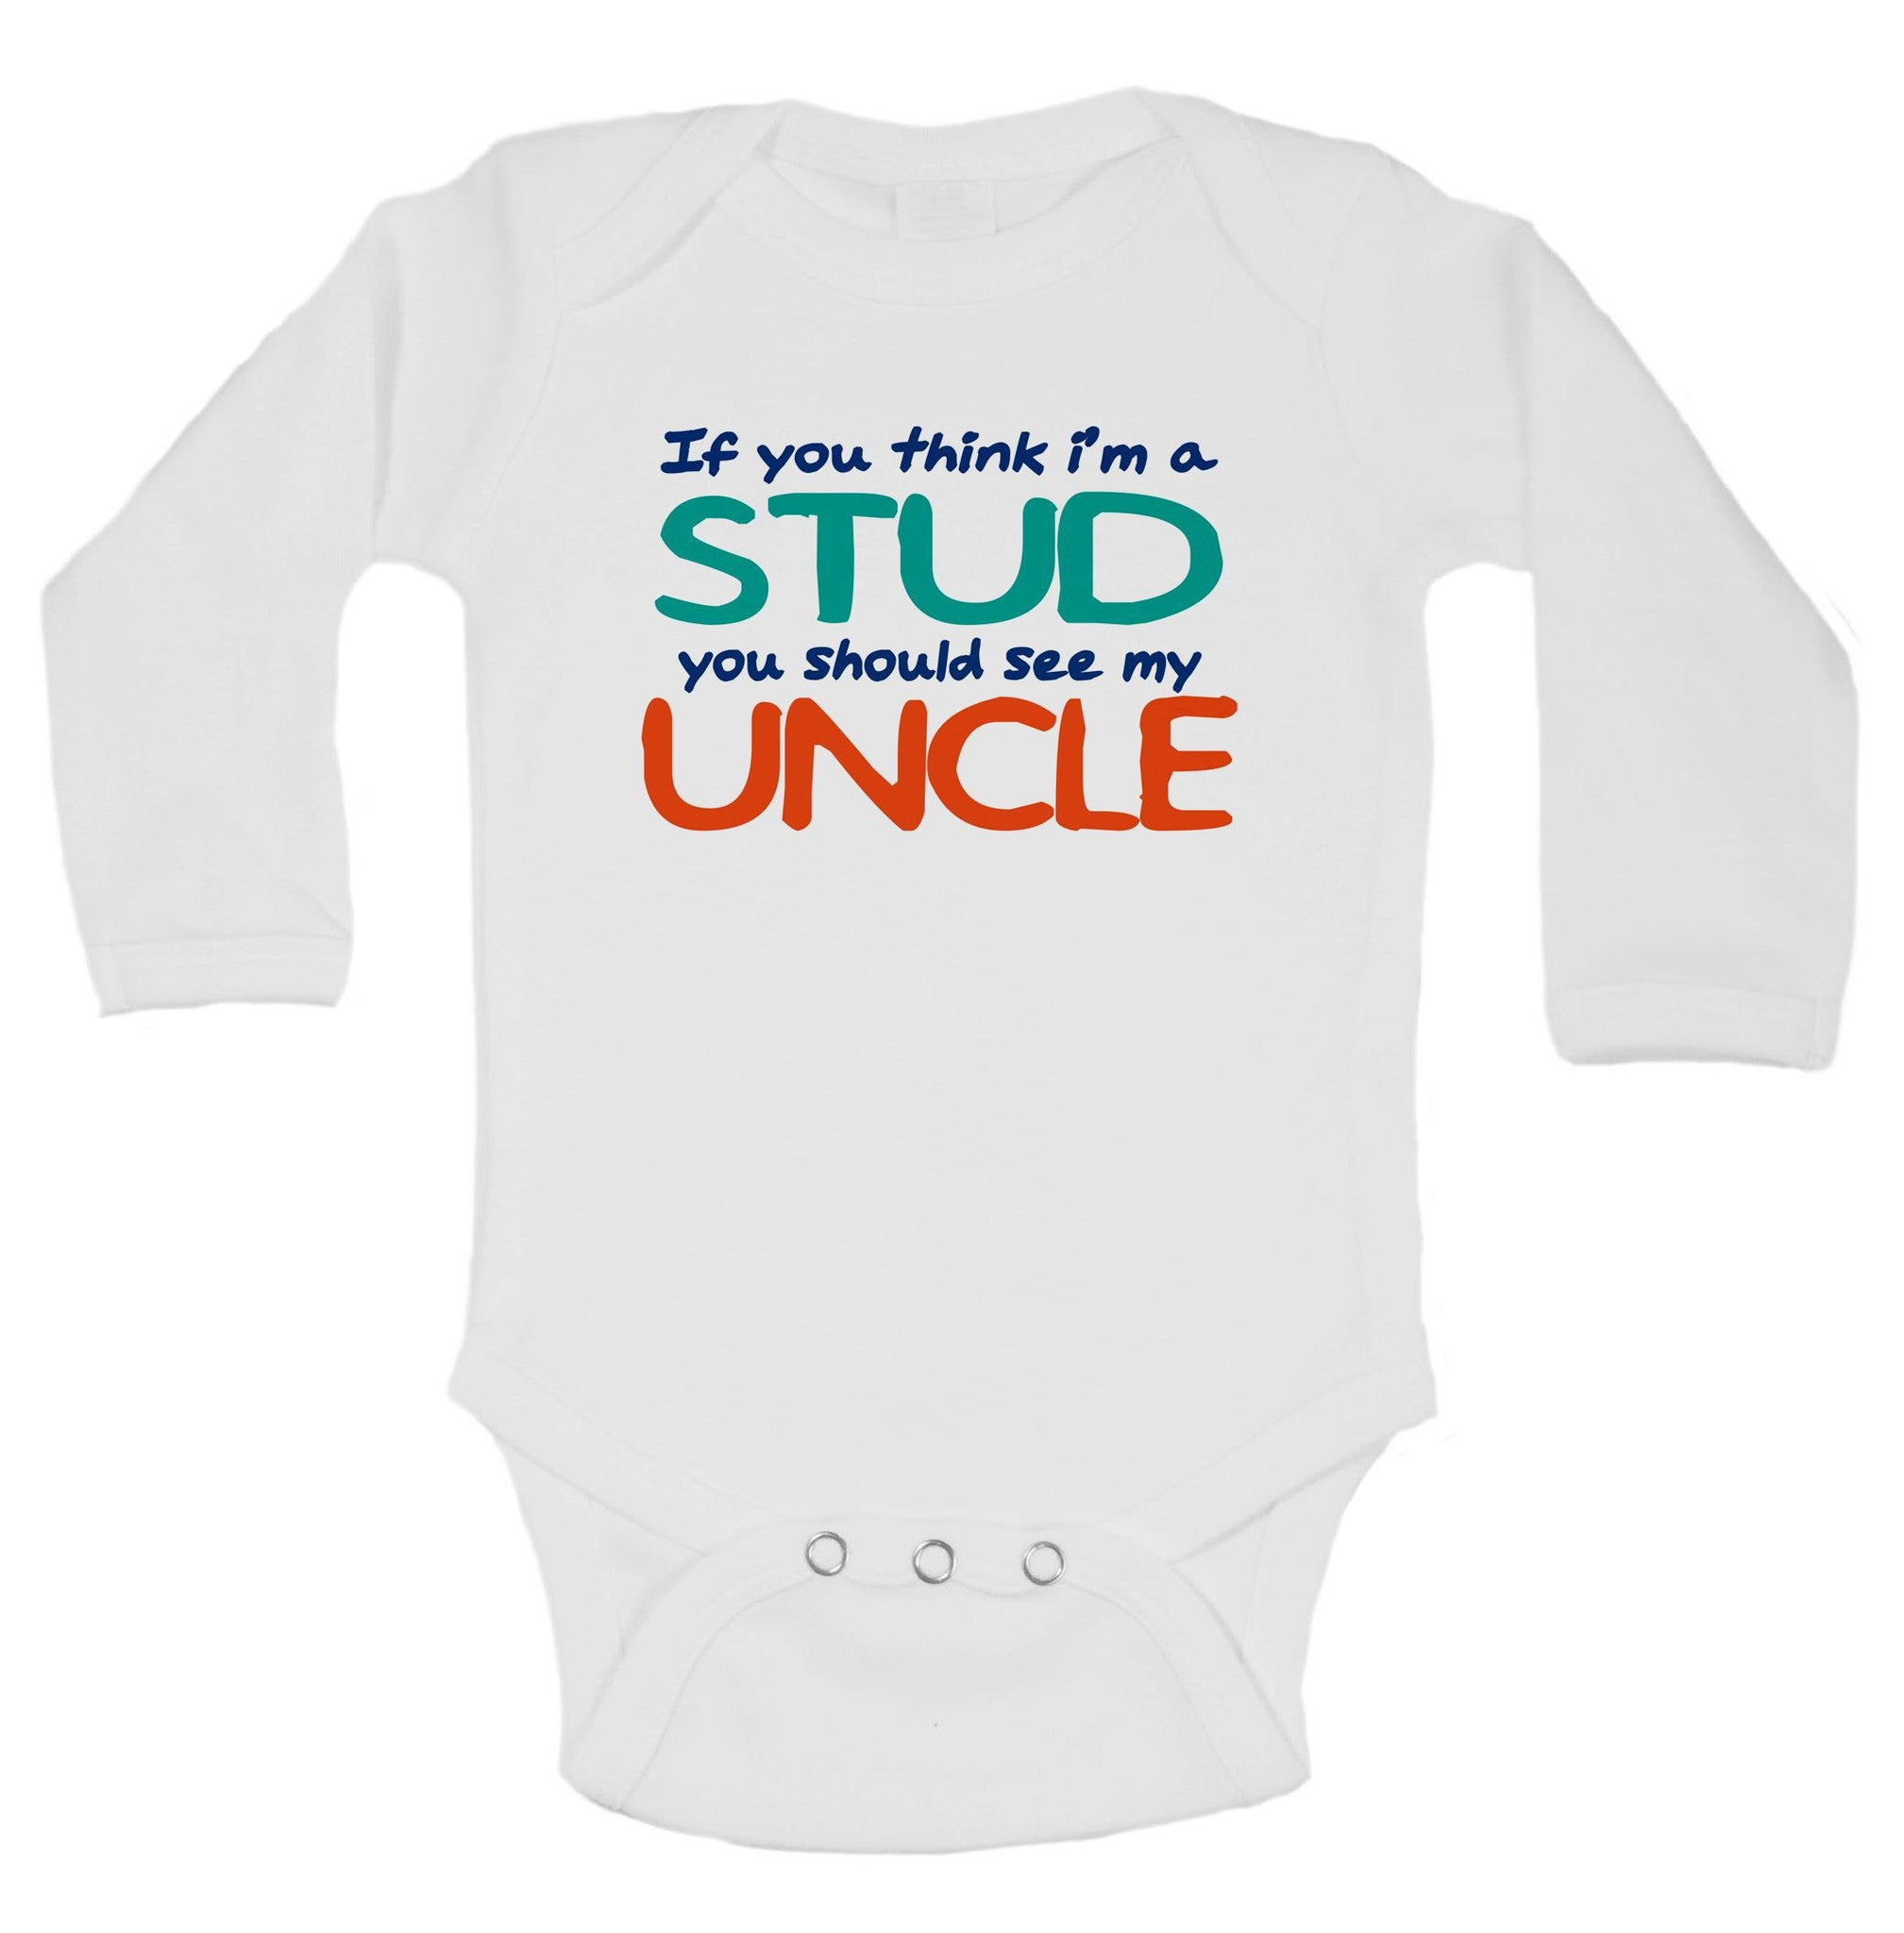 If You Think I'm A Stud You Should See My Uncle Funny Kids Onesie - B22 - Funny Shirts Tank Tops Burnouts and Triblends  - 1